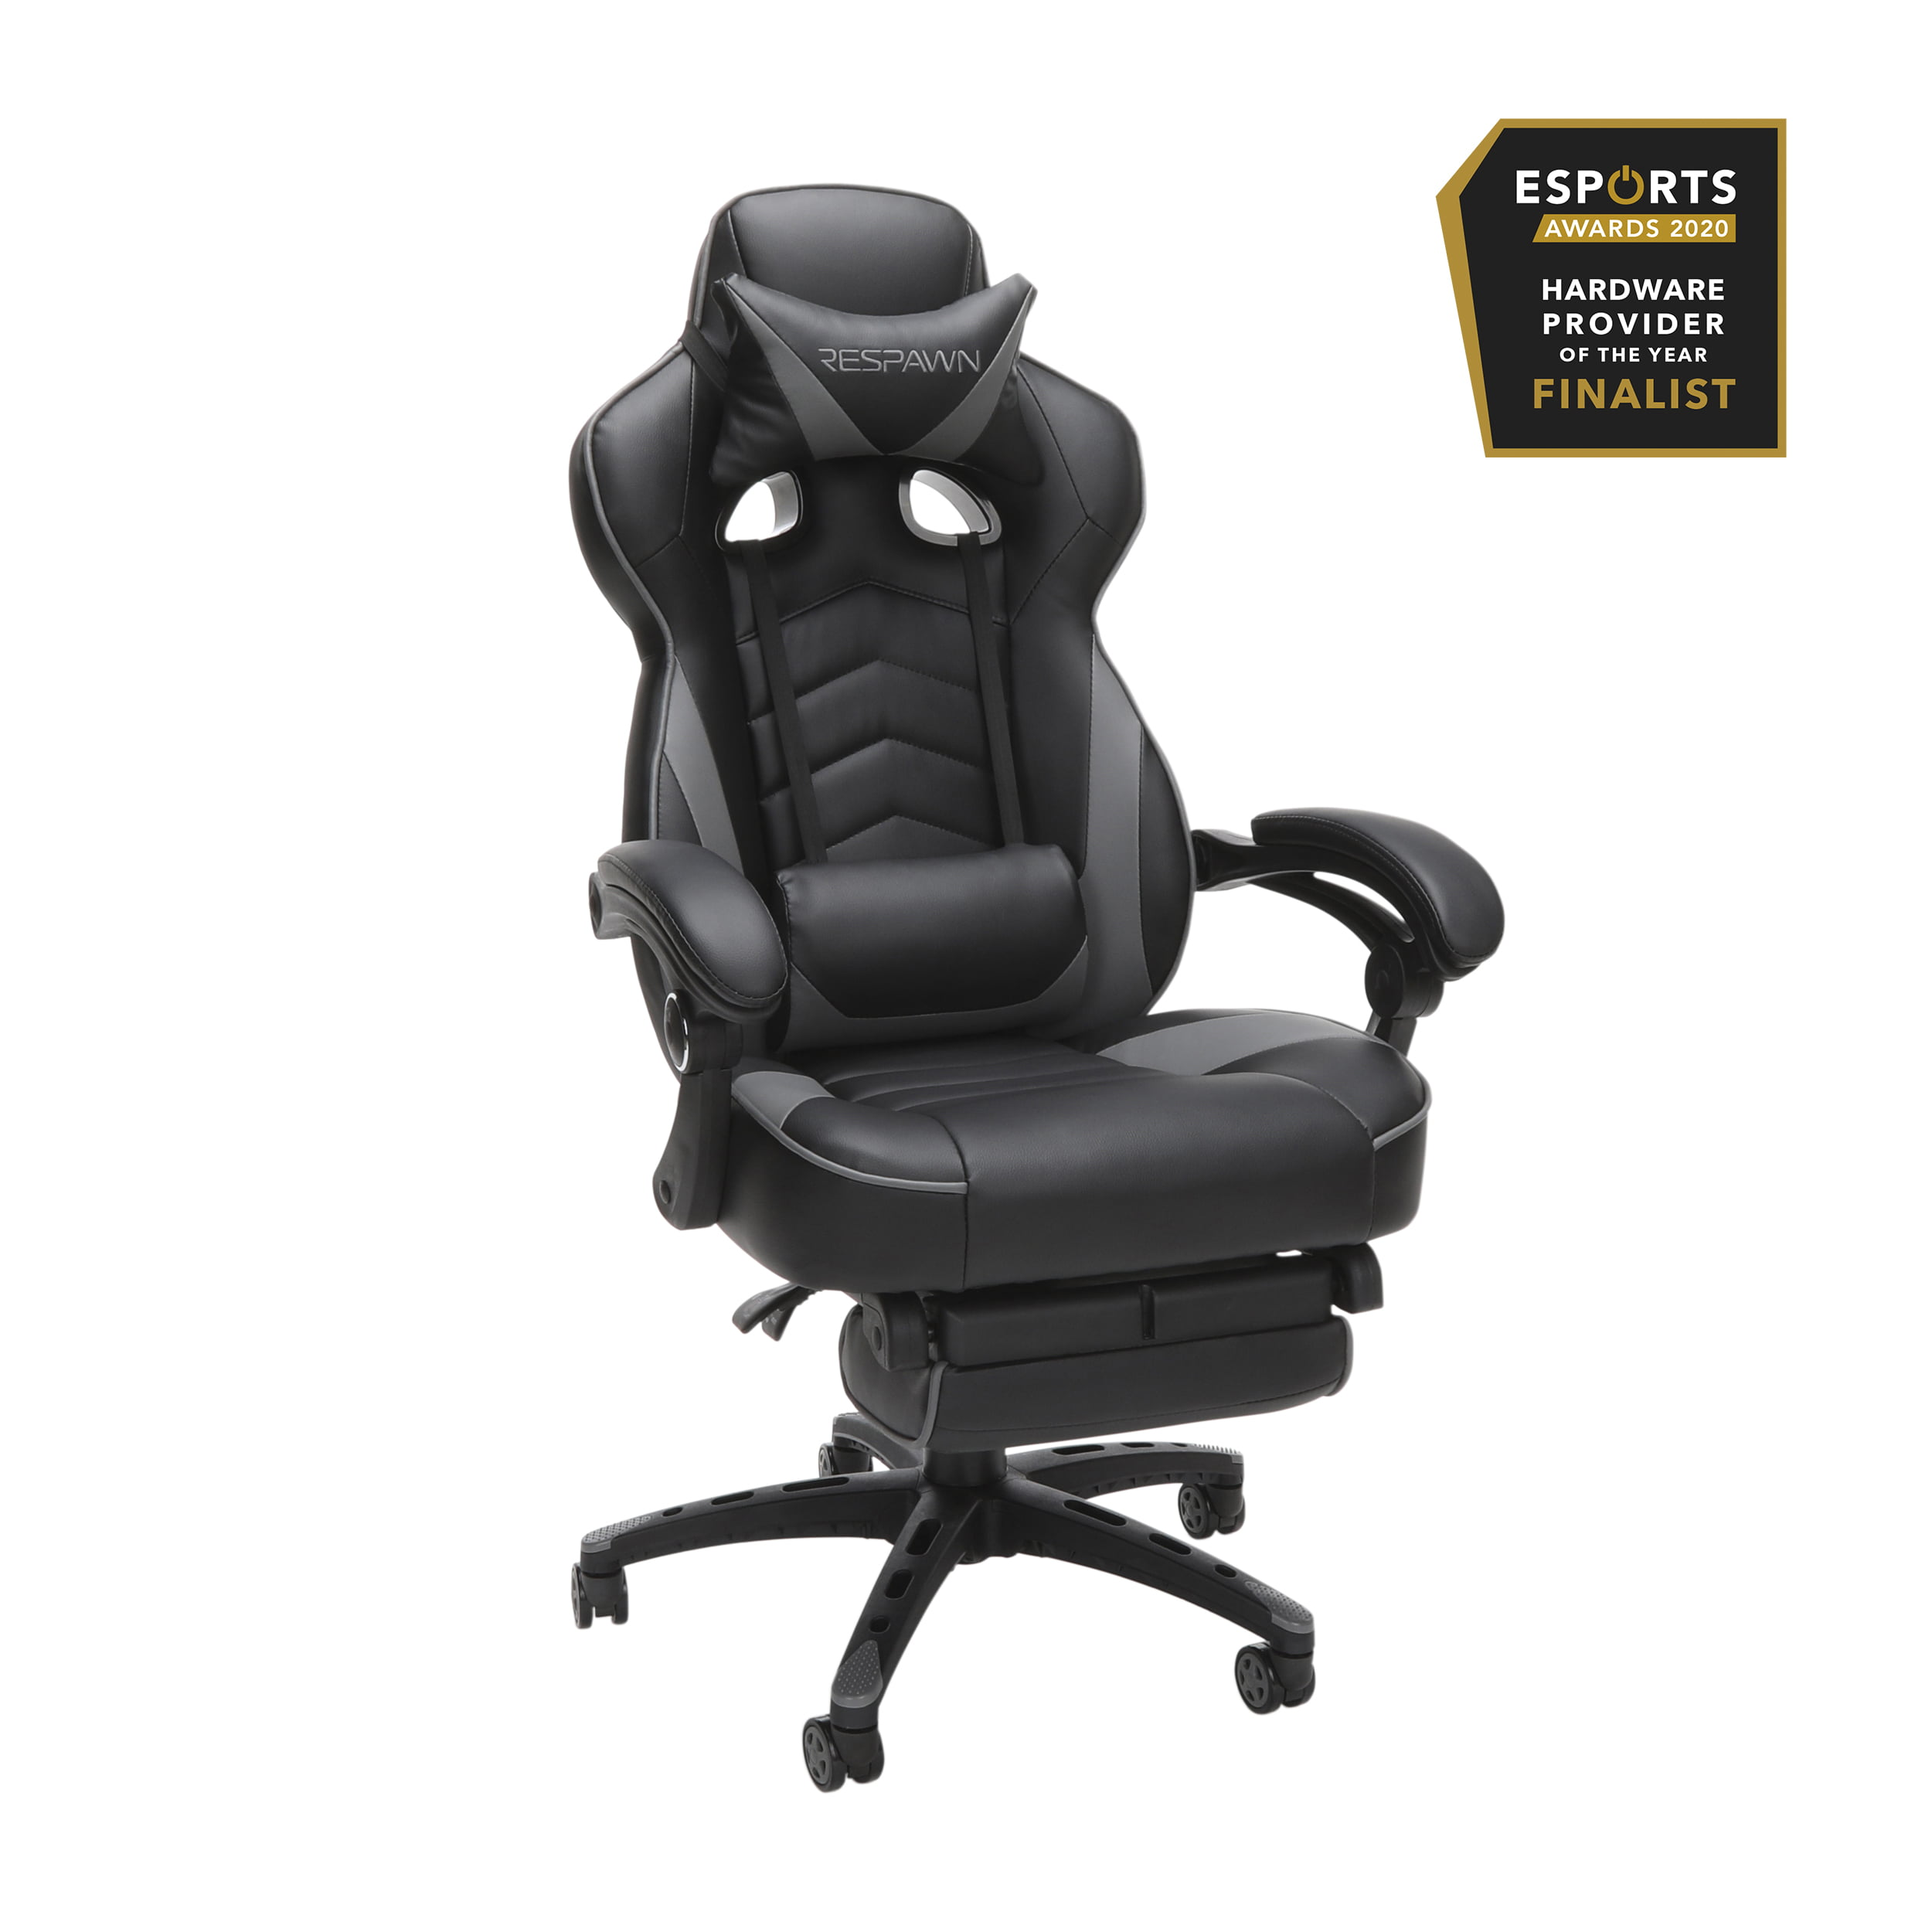 RESPAWN 110 Racing Style Gaming Chair, Reclining Ergonomic Leather